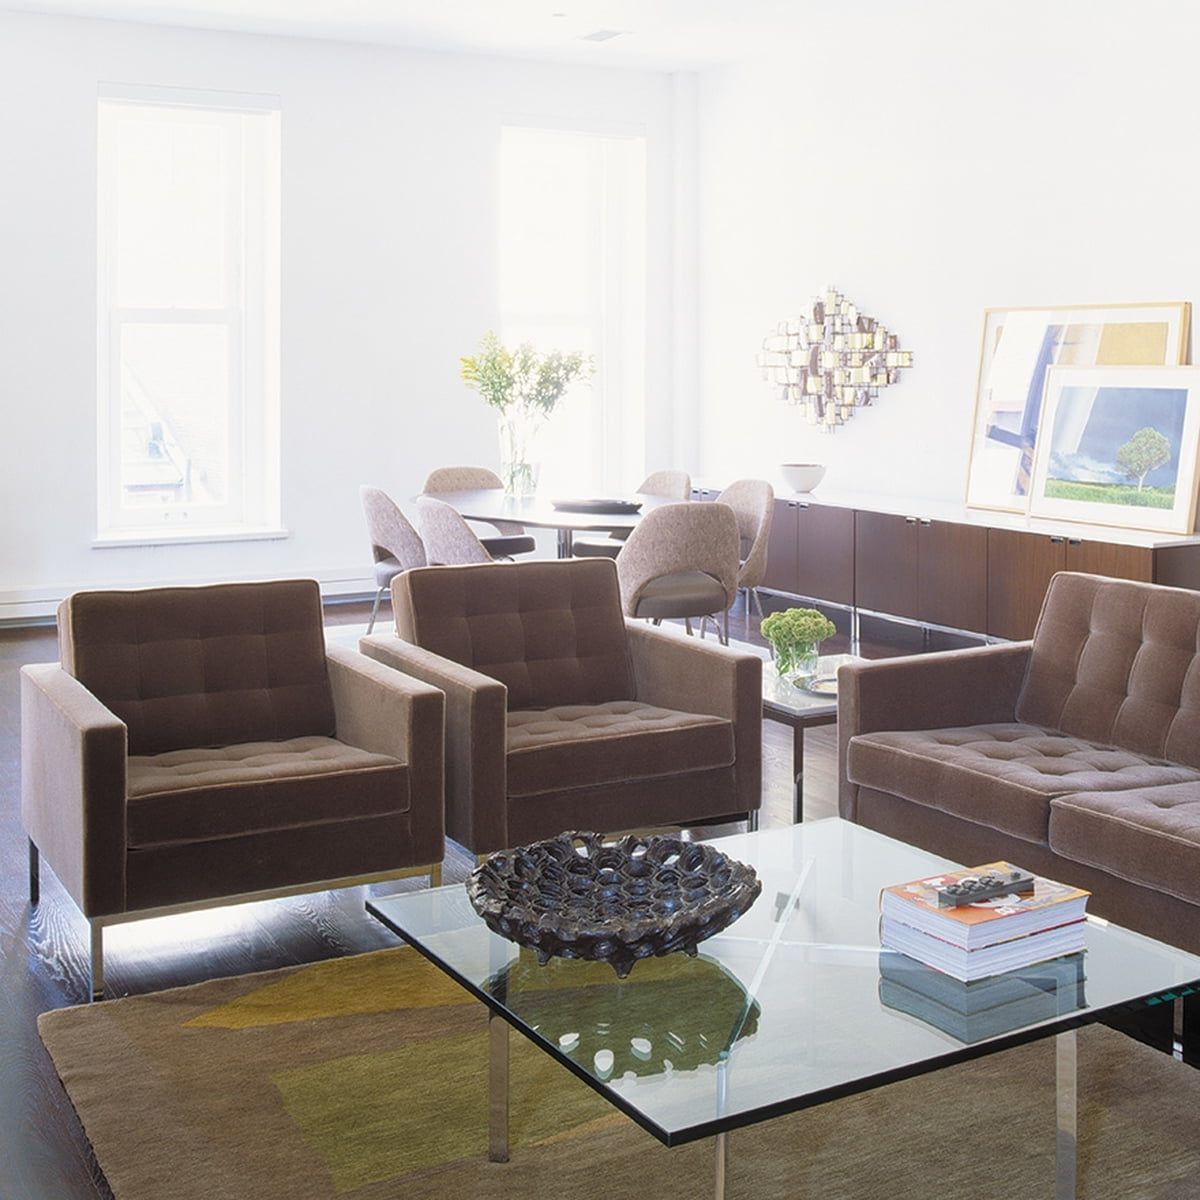 Knoll Florence 3 Seats Sofa In The Shop throughout Popular Florence Knoll Living Room Sofas